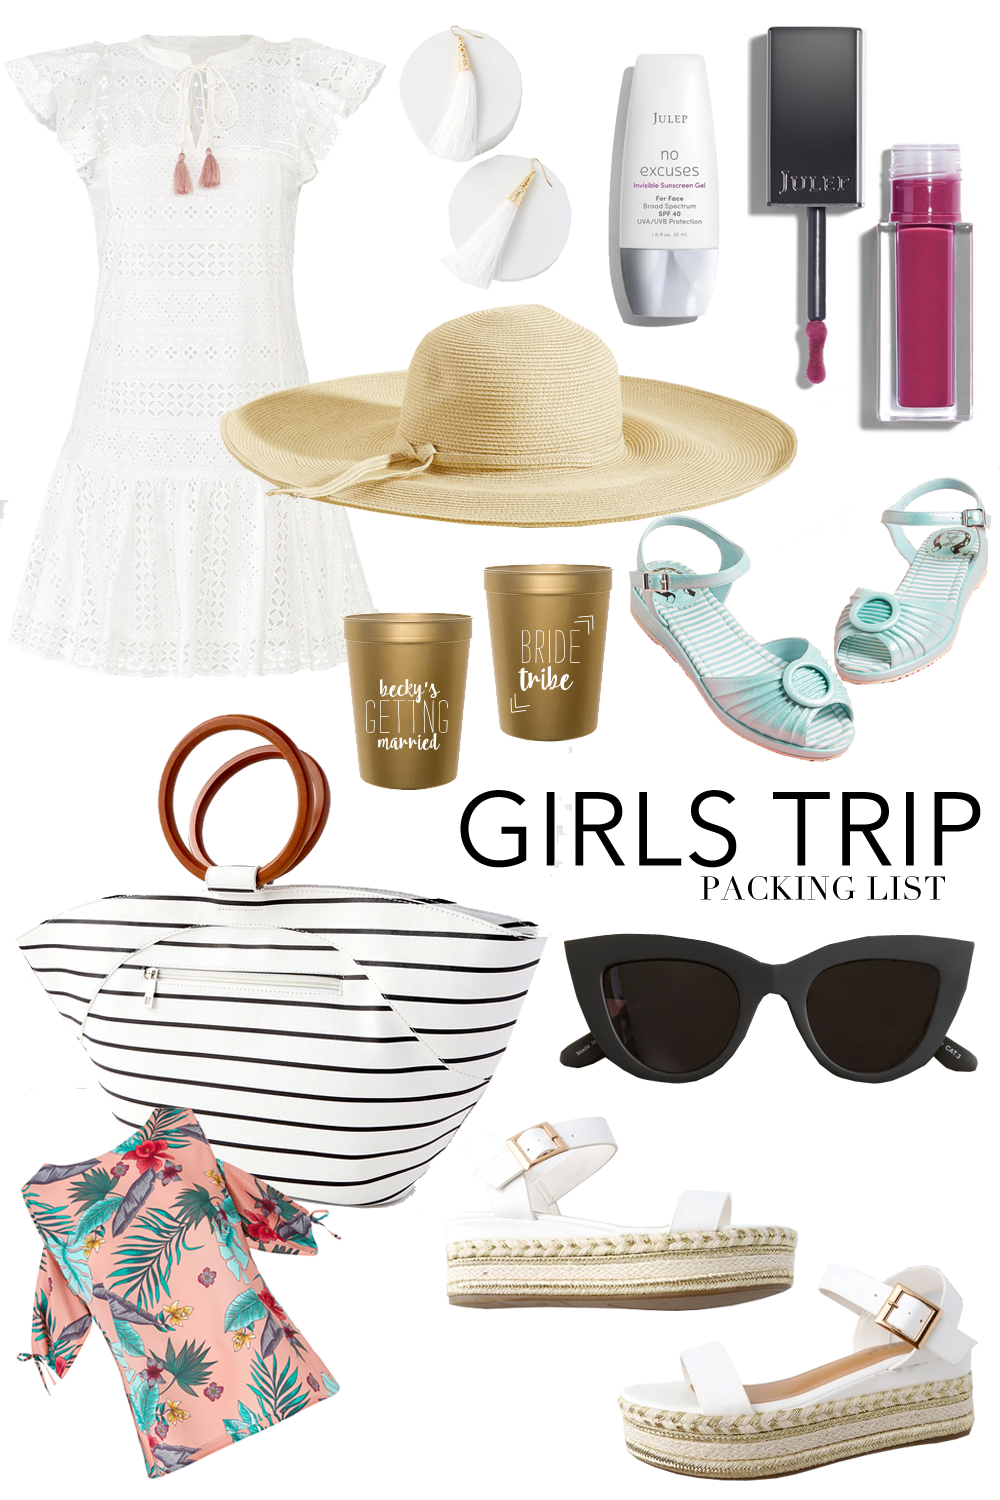 GIRLS-WEEKEND-GETAWAY-SAVANNAH-WEDDING-PLANNER-SAVANNAH-EVENT-DESIGNER-SAVANNAH-GEORGIA-WEDDING-INSPIRATION-GIRLS-TRIP-WEDDINGS-BACHELORETTE-PARTY.png